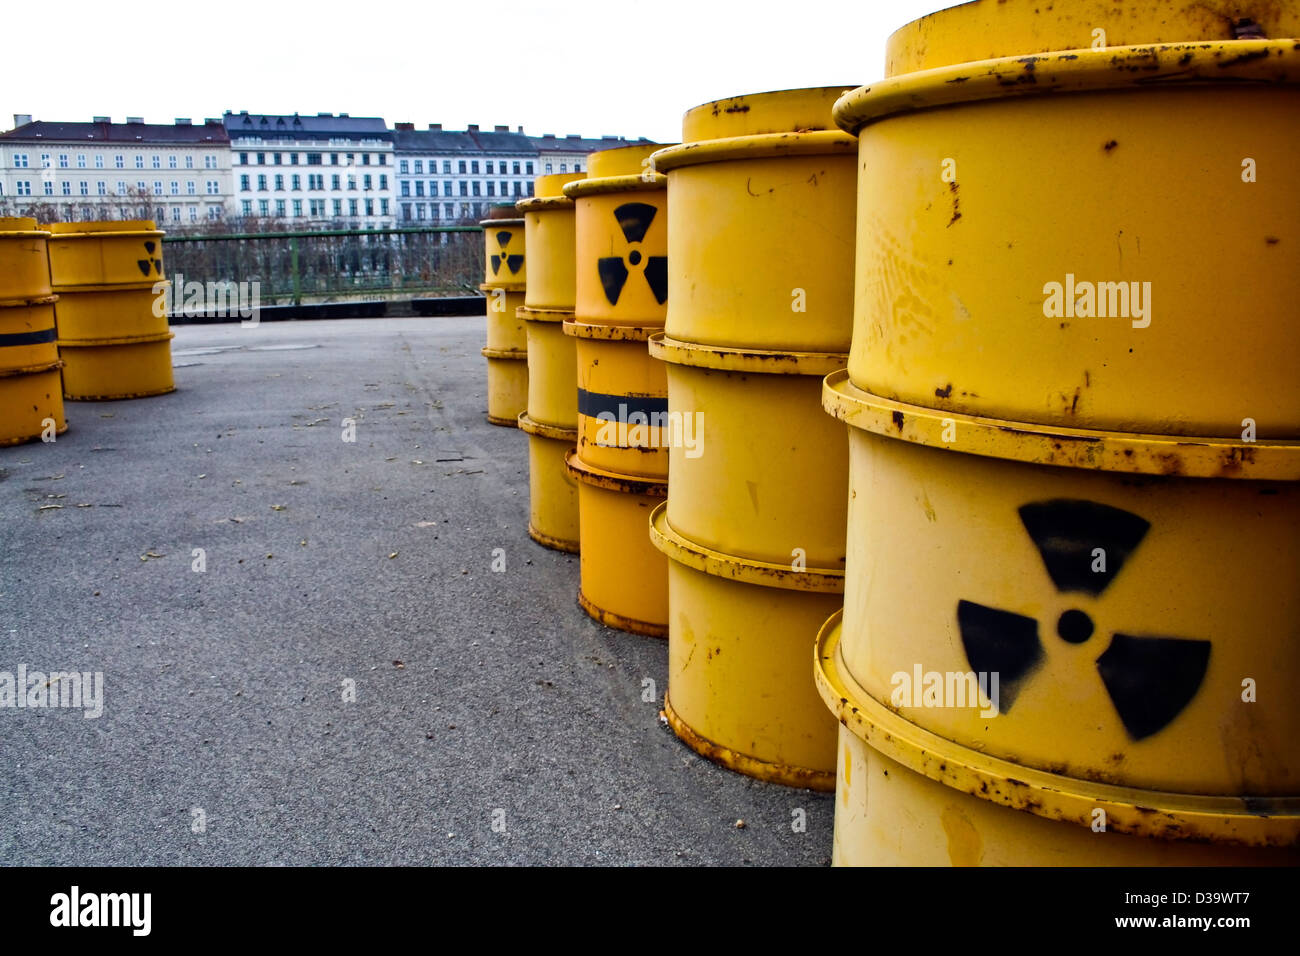 Rusty and old barrel with radioactive waste Stock Photo